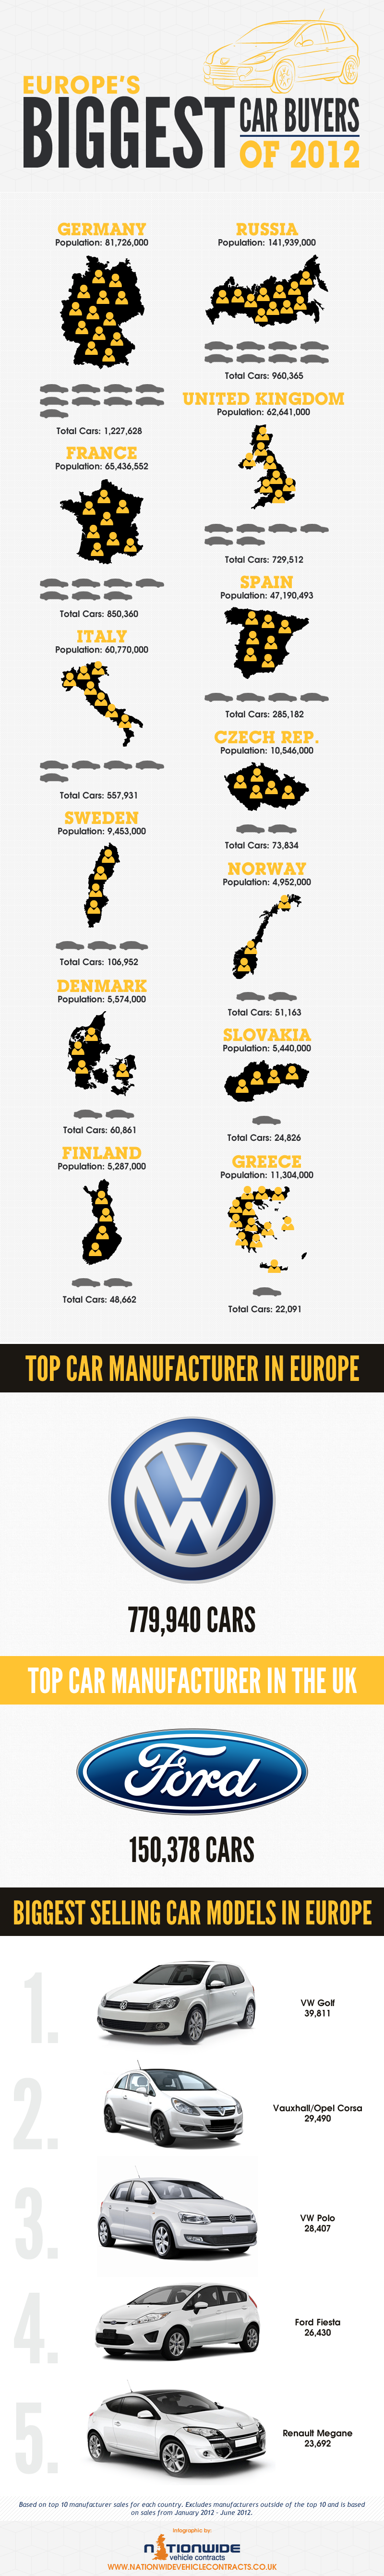 EUROPESBIGGESTCARBUYERS_V1.0_23082012.png